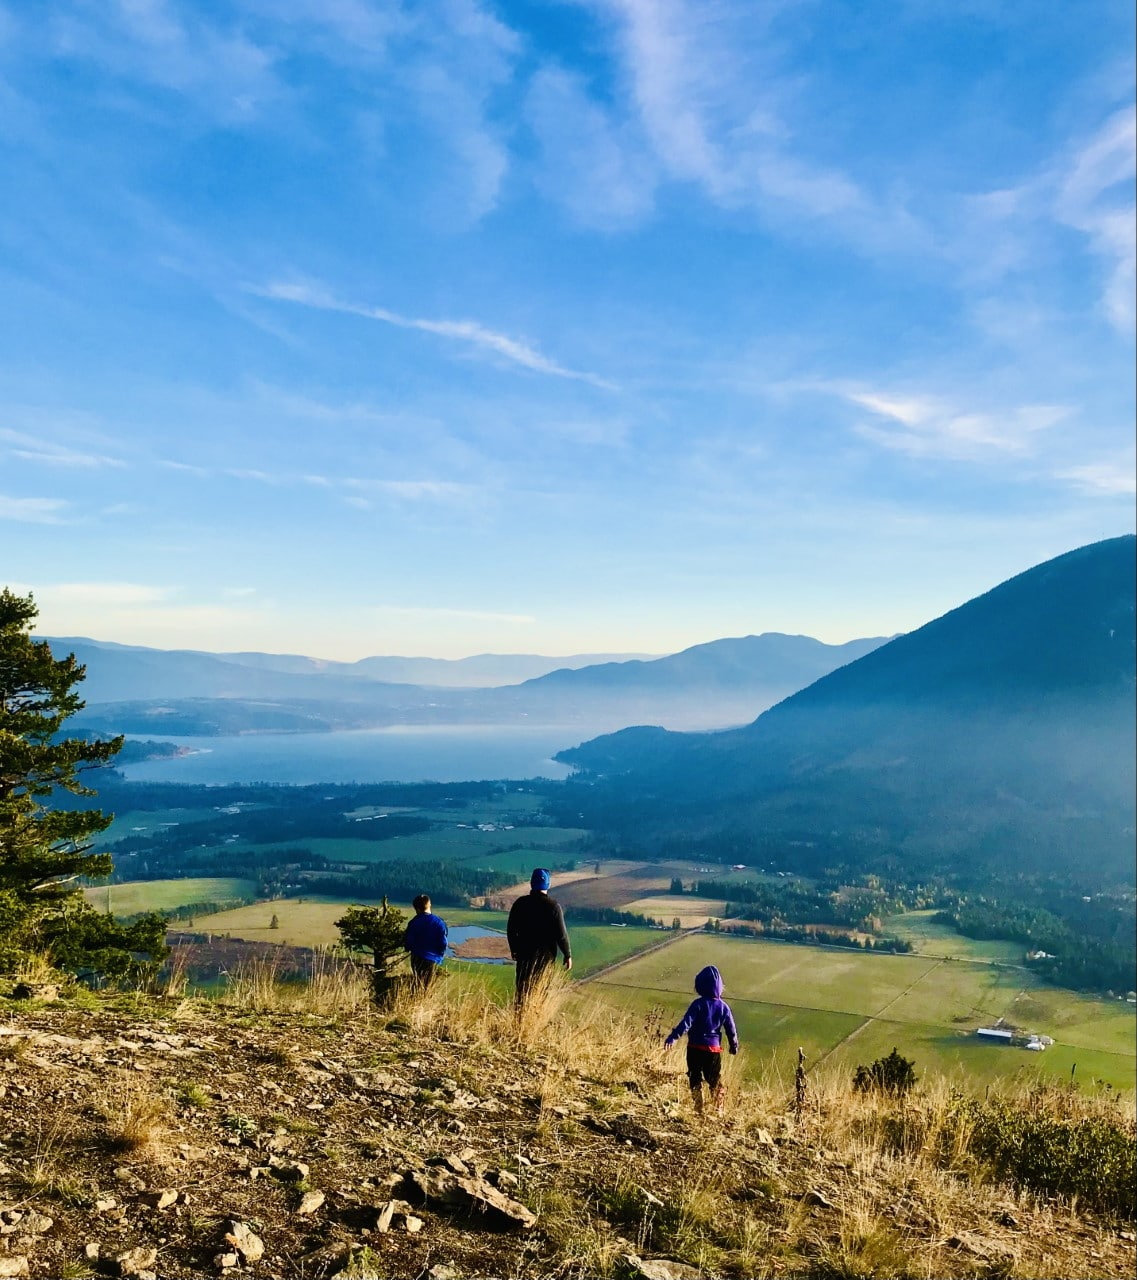 Image 2 Tappen Bluffs Trail looking out over Tappen Bay, Tappen Valley and Salmon Arm